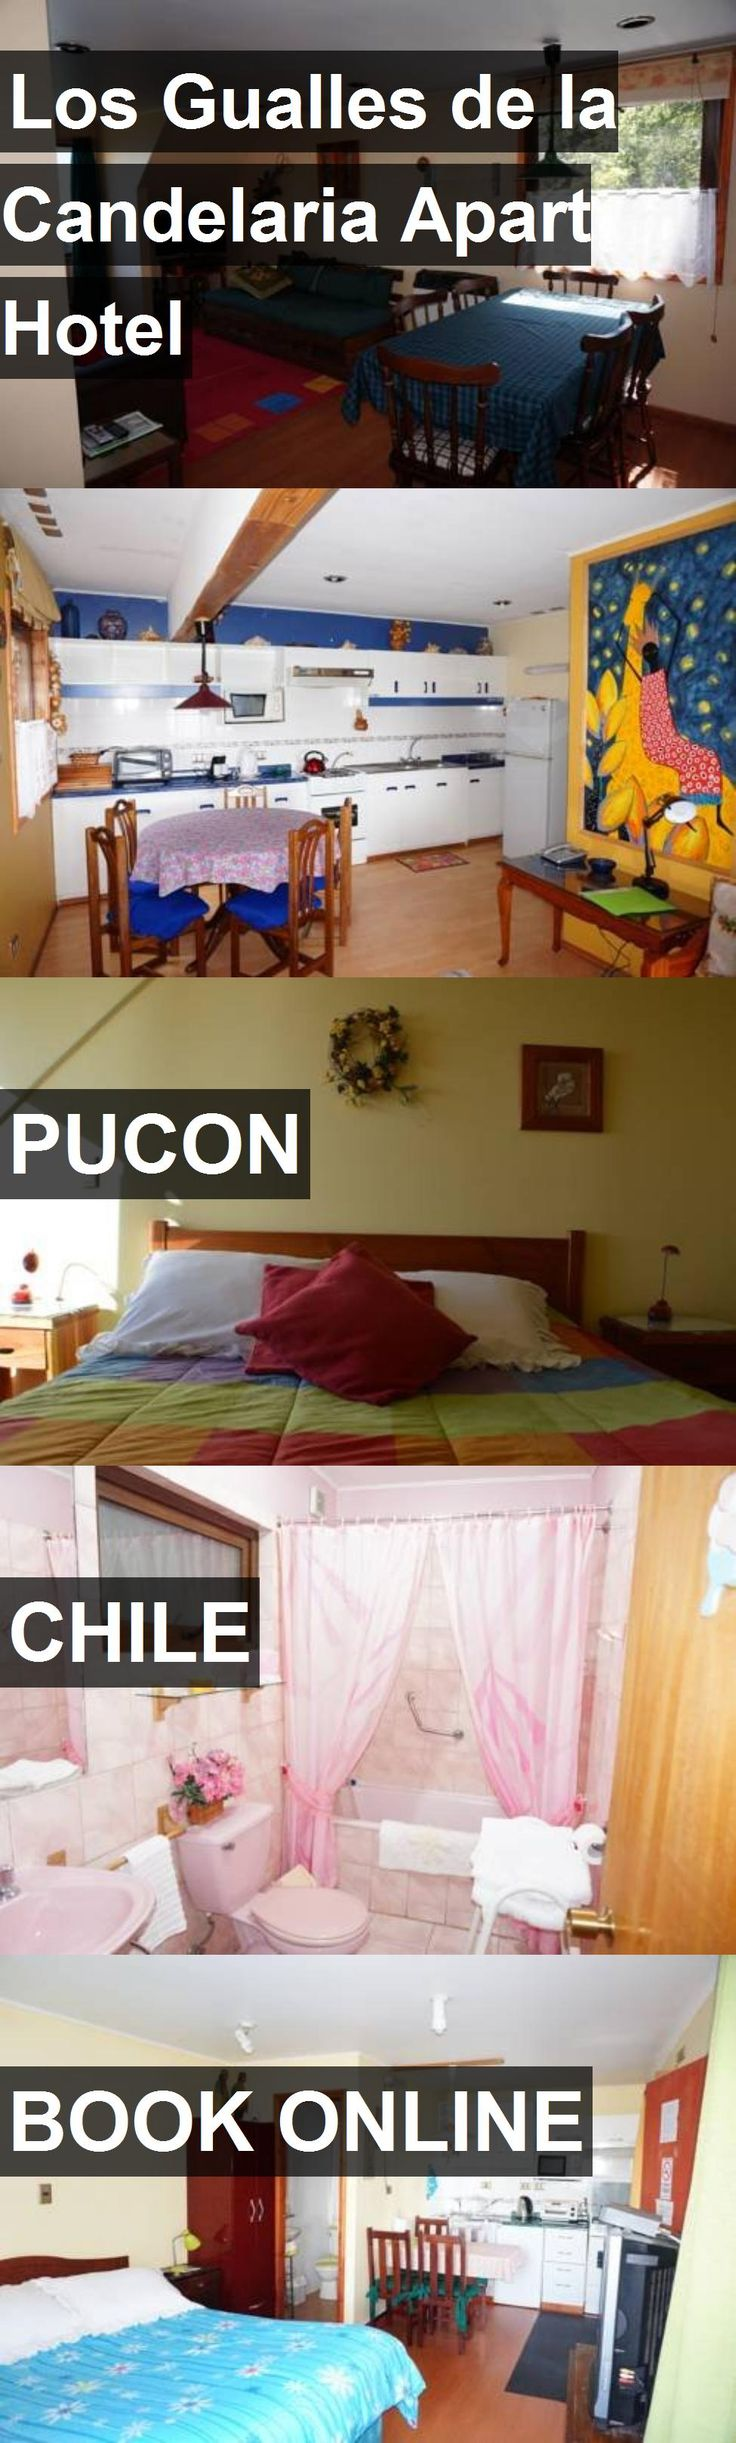 Hotel Los Gualles de la Candelaria Apart Hotel in Pucon, Chile. For more information, photos, reviews and best prices please follow the link. #Chile #Pucon #LosGuallesdelaCandelariaApartHotel #hotel #travel #vacation